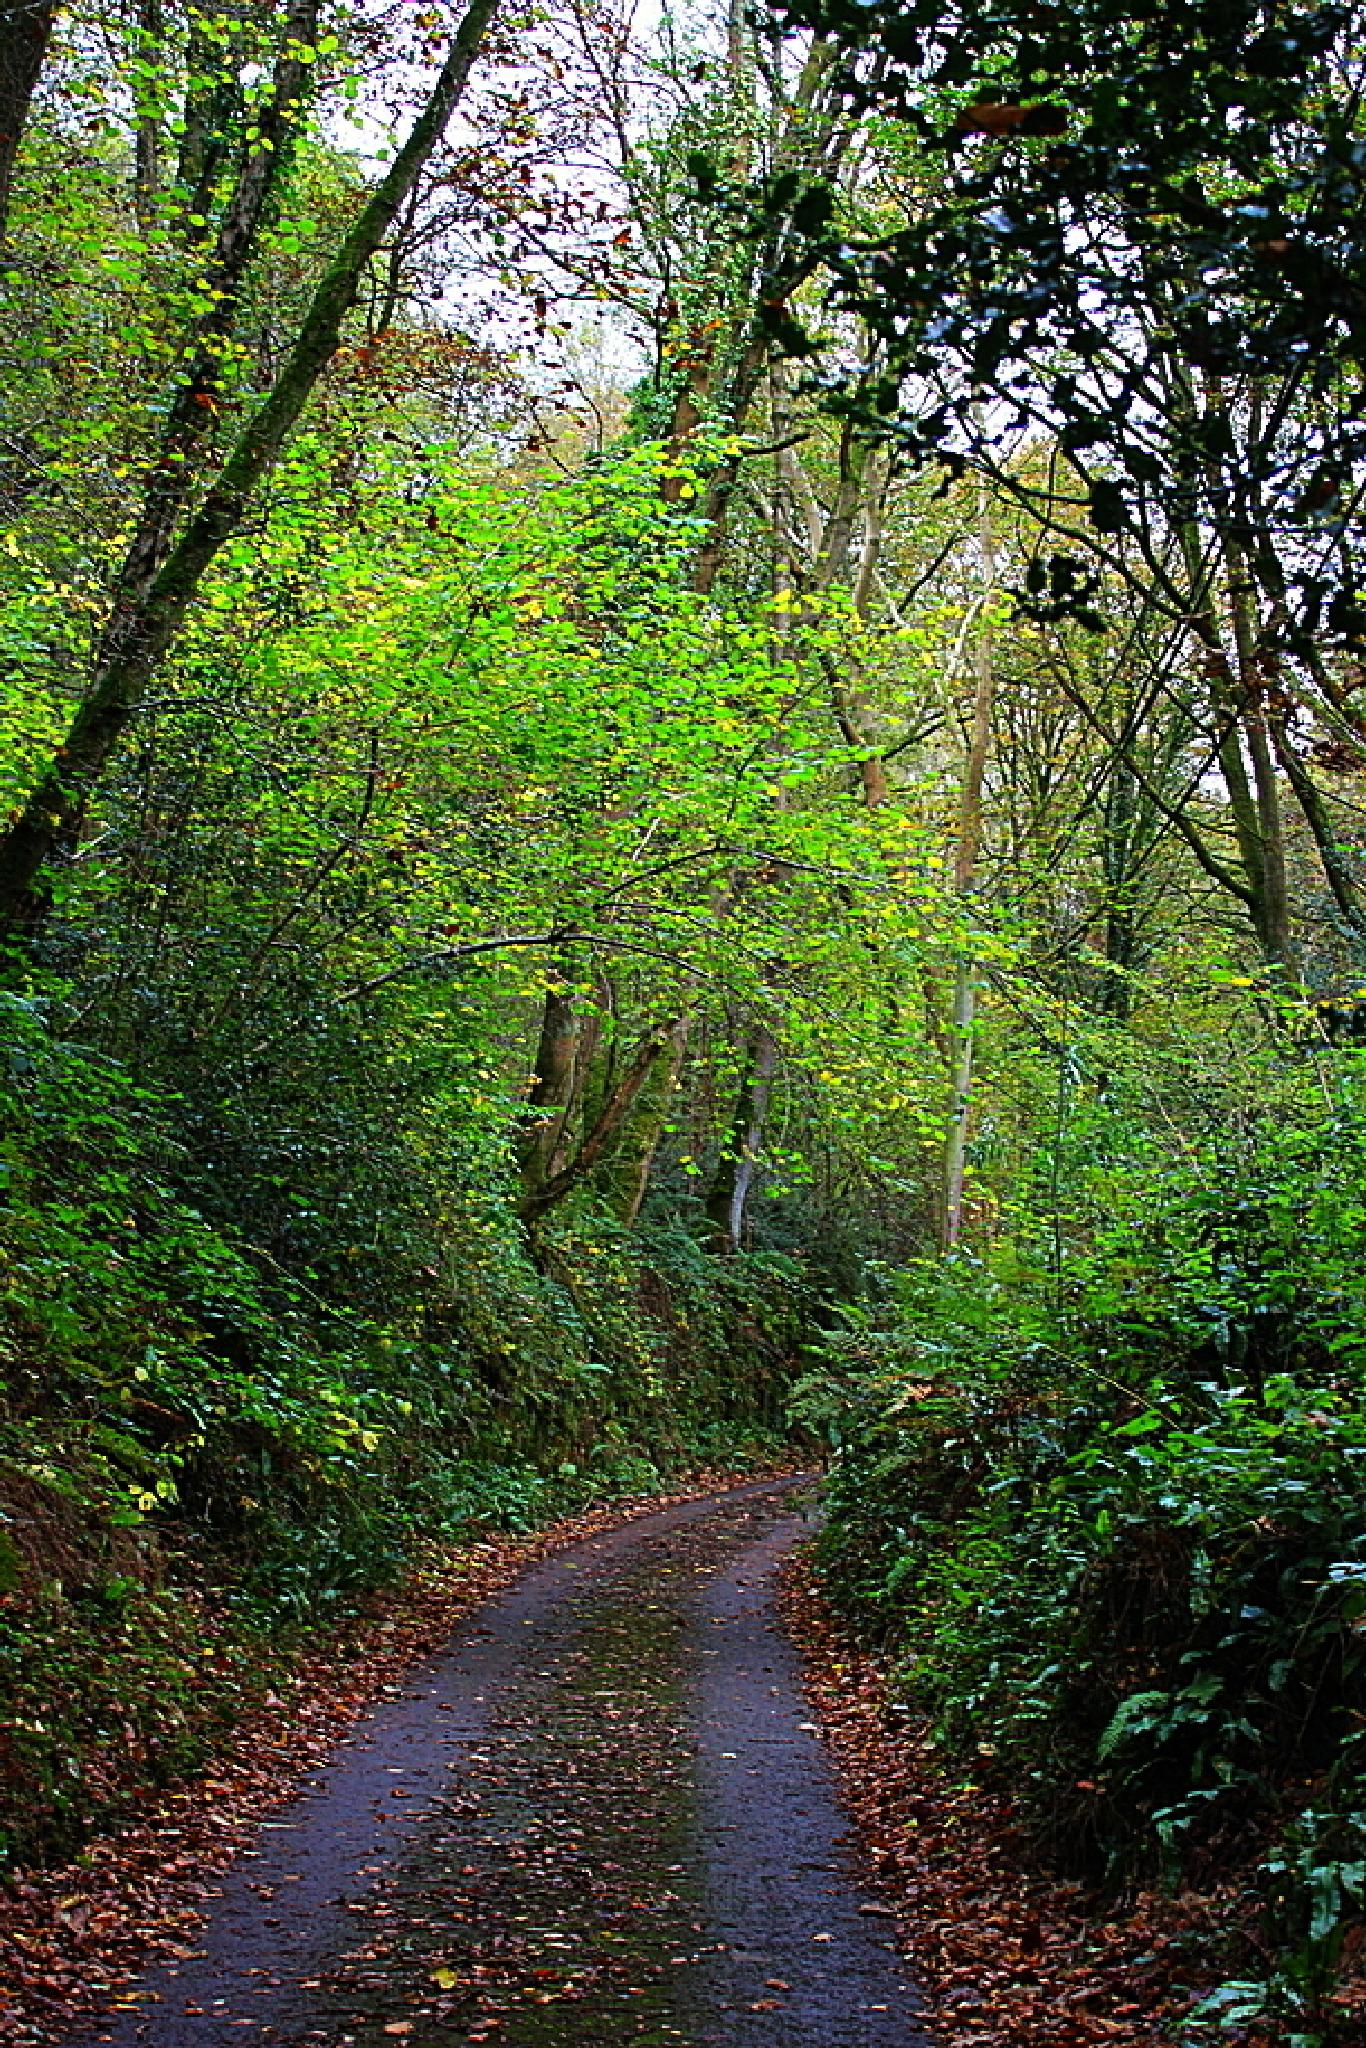 Monmouthshire lane by ralph.cook2